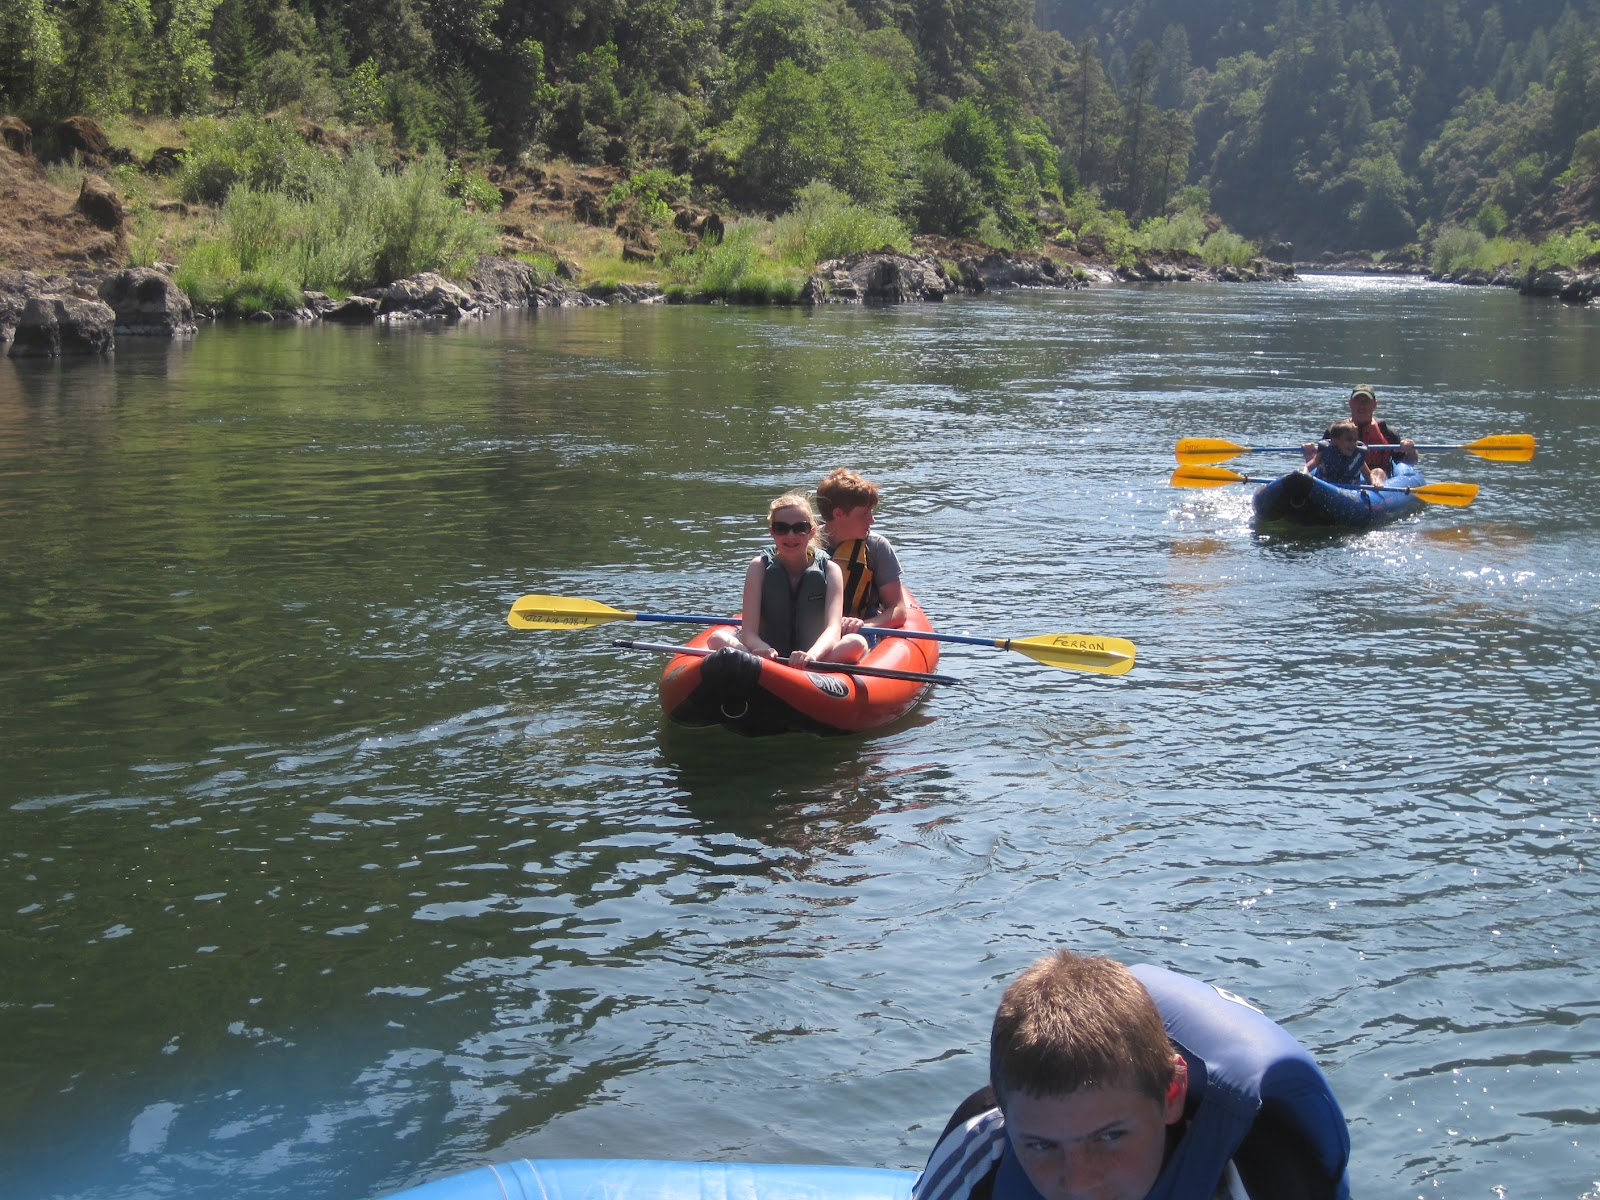 Rogue River Rafting: Rogue River raft trip on August 14, 2012